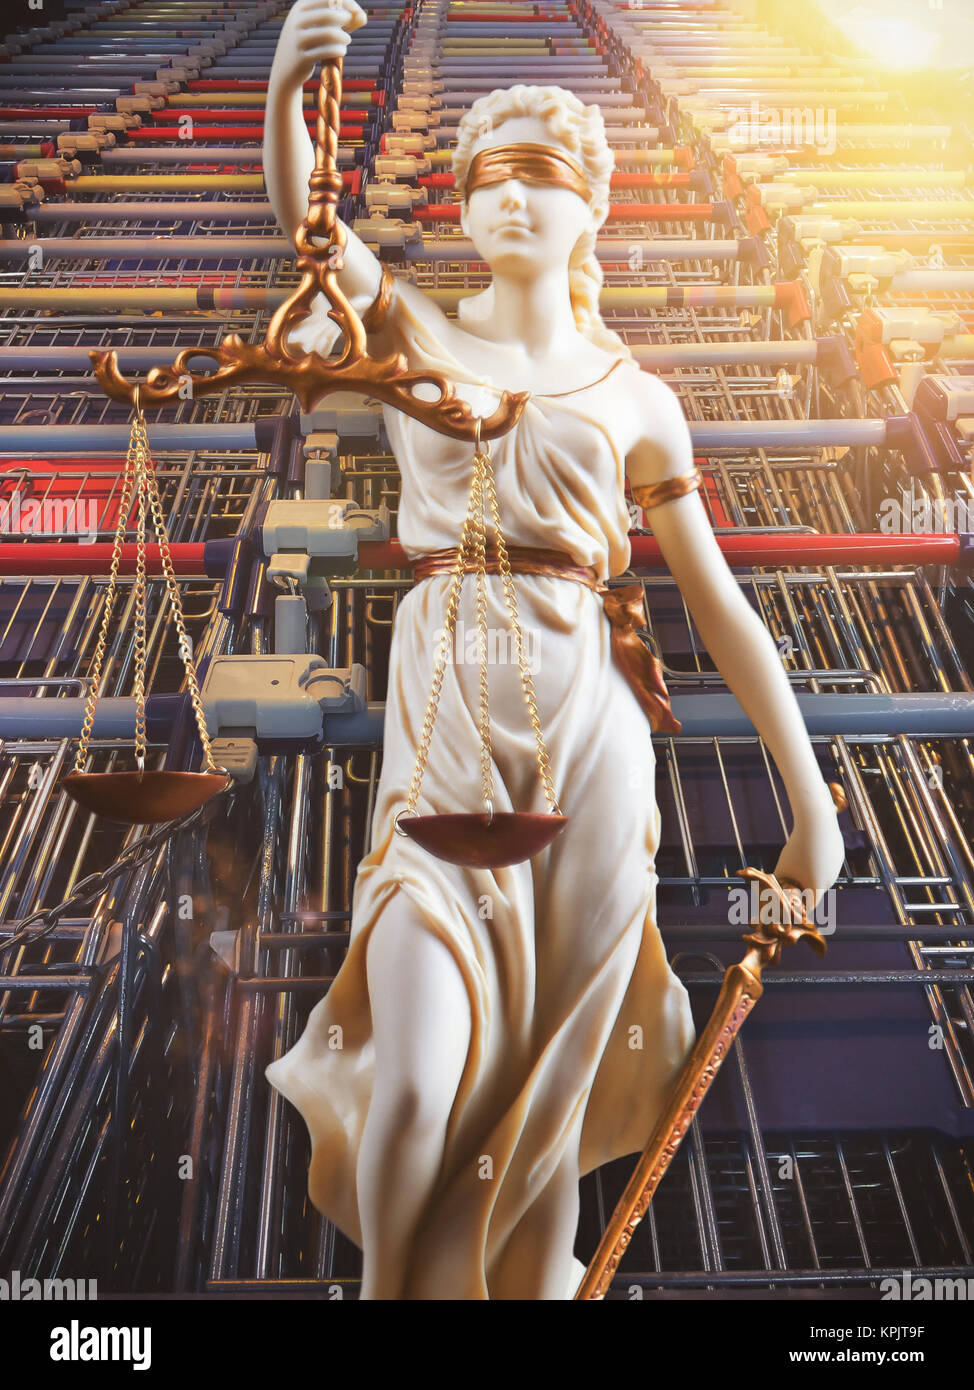 White Justice figure in front of shopping cart - consumer protection - Stock Image